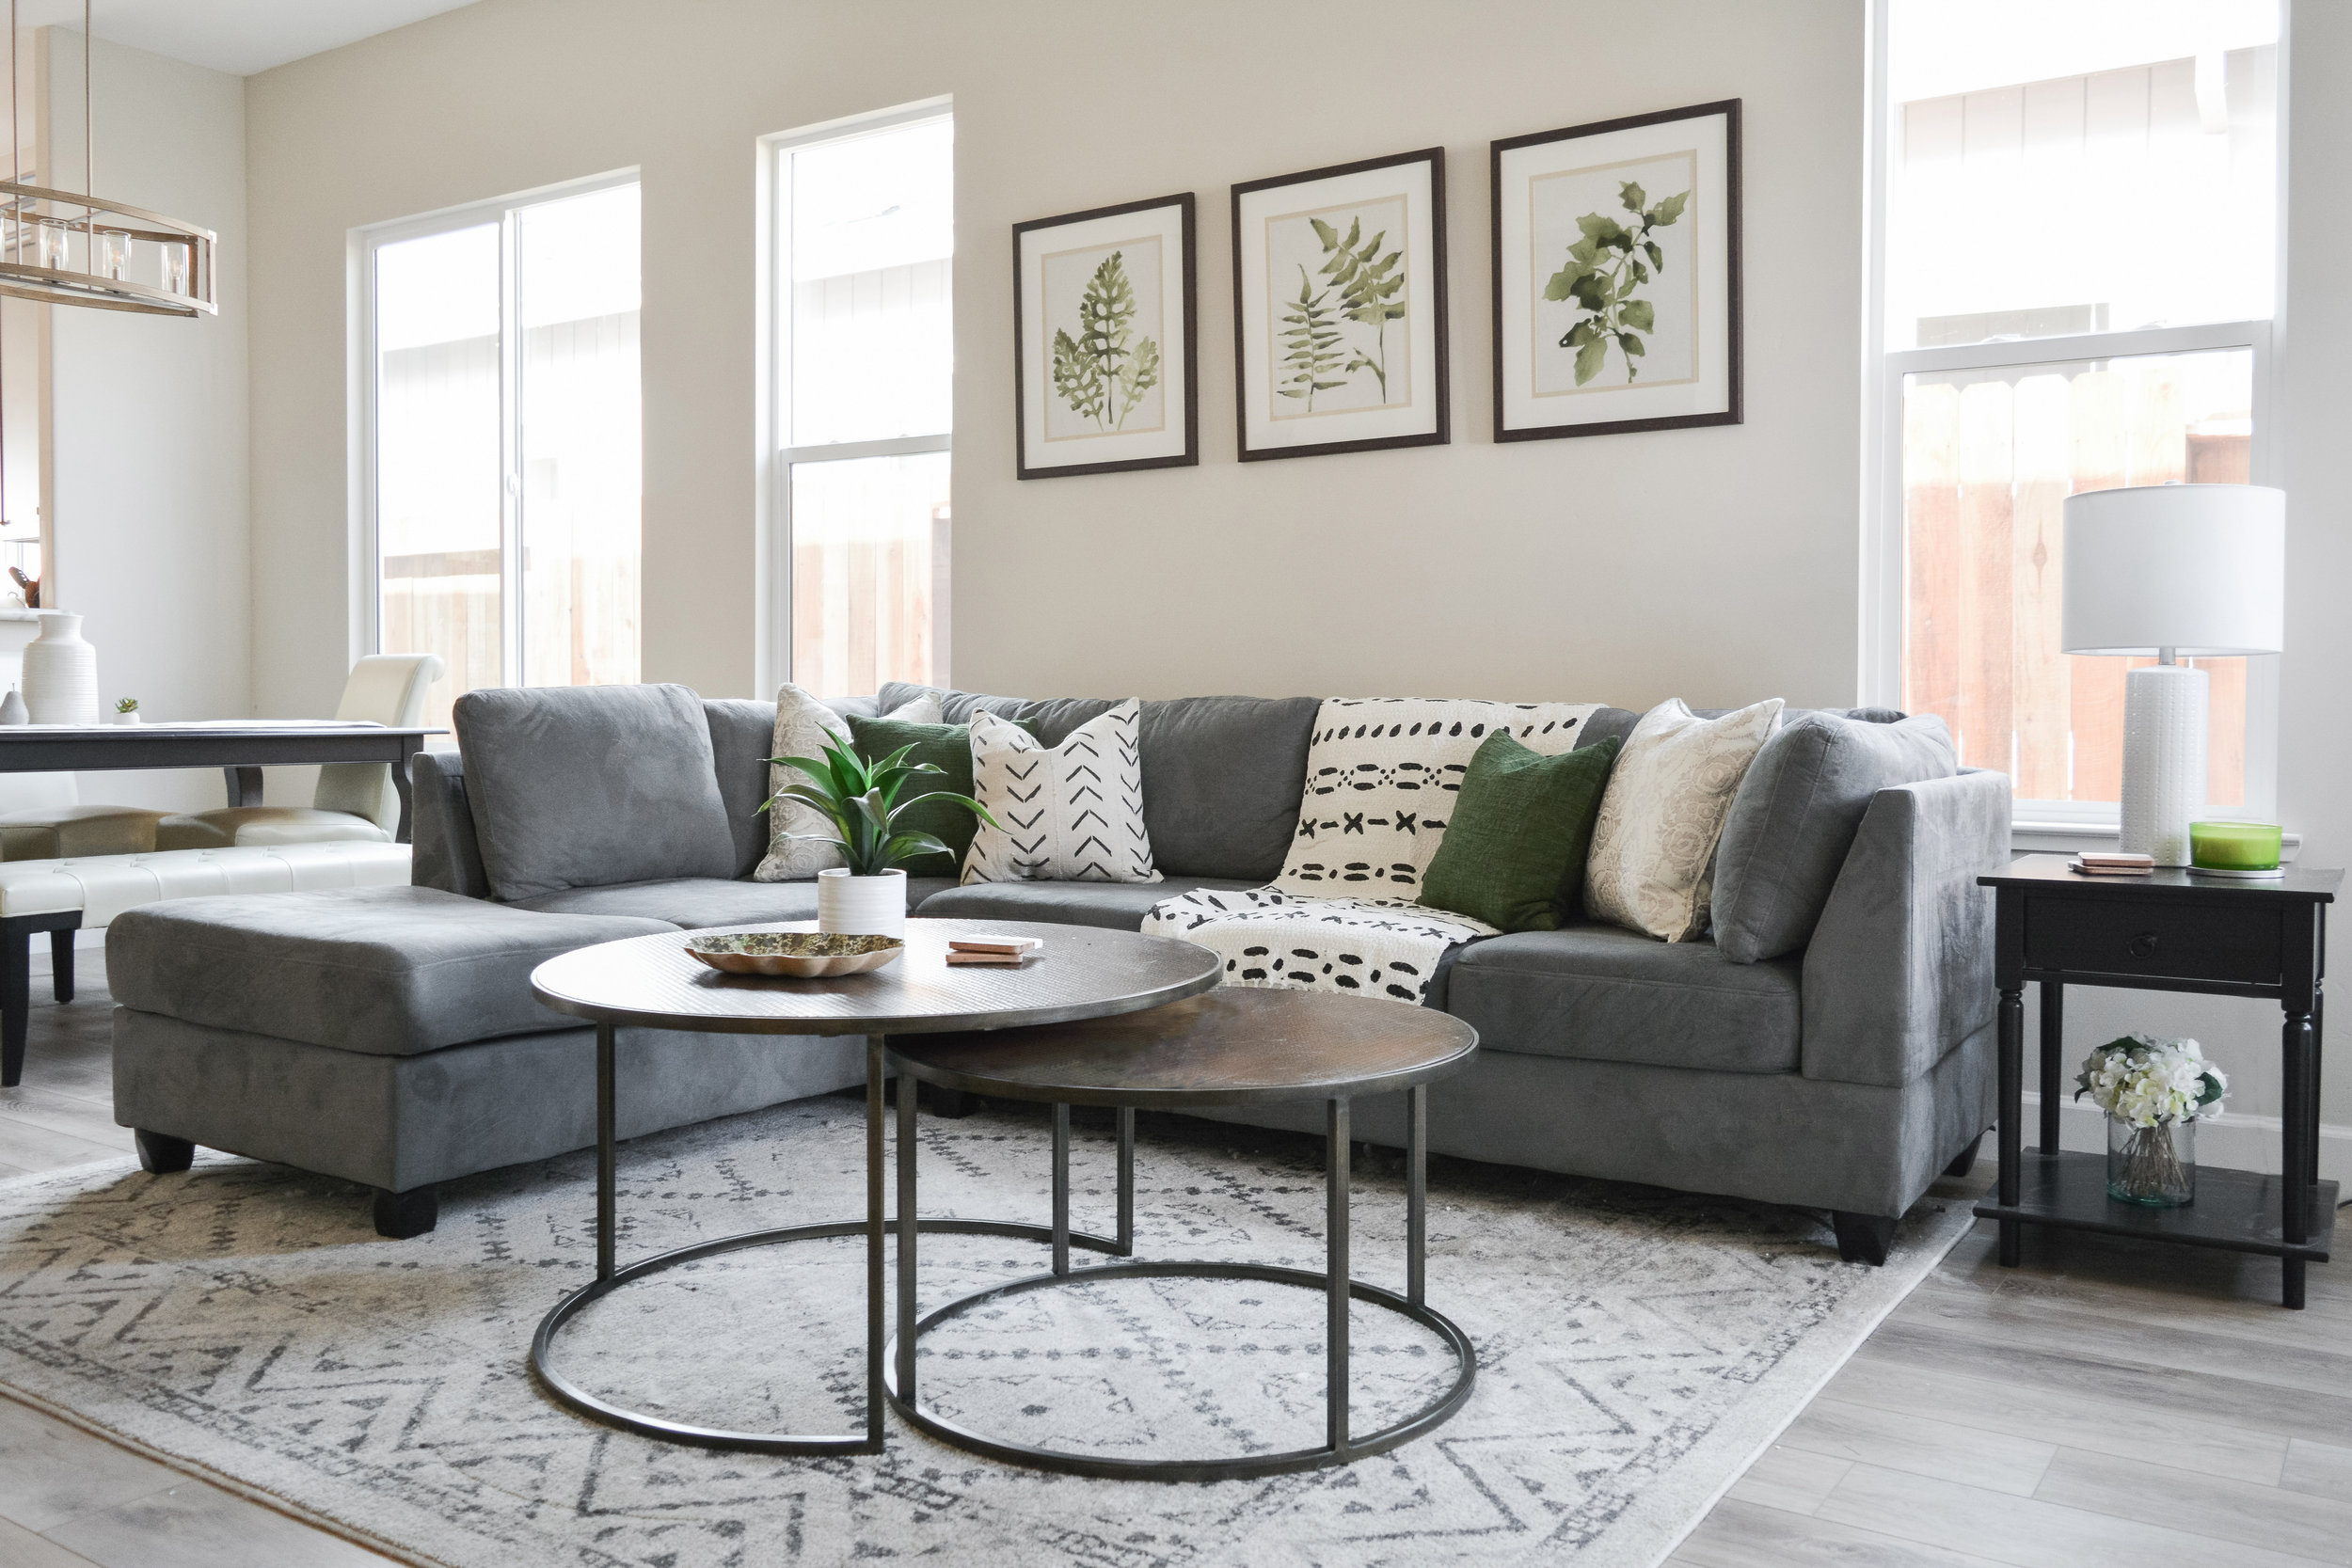 WILLOWGREEN LIVING ROOM